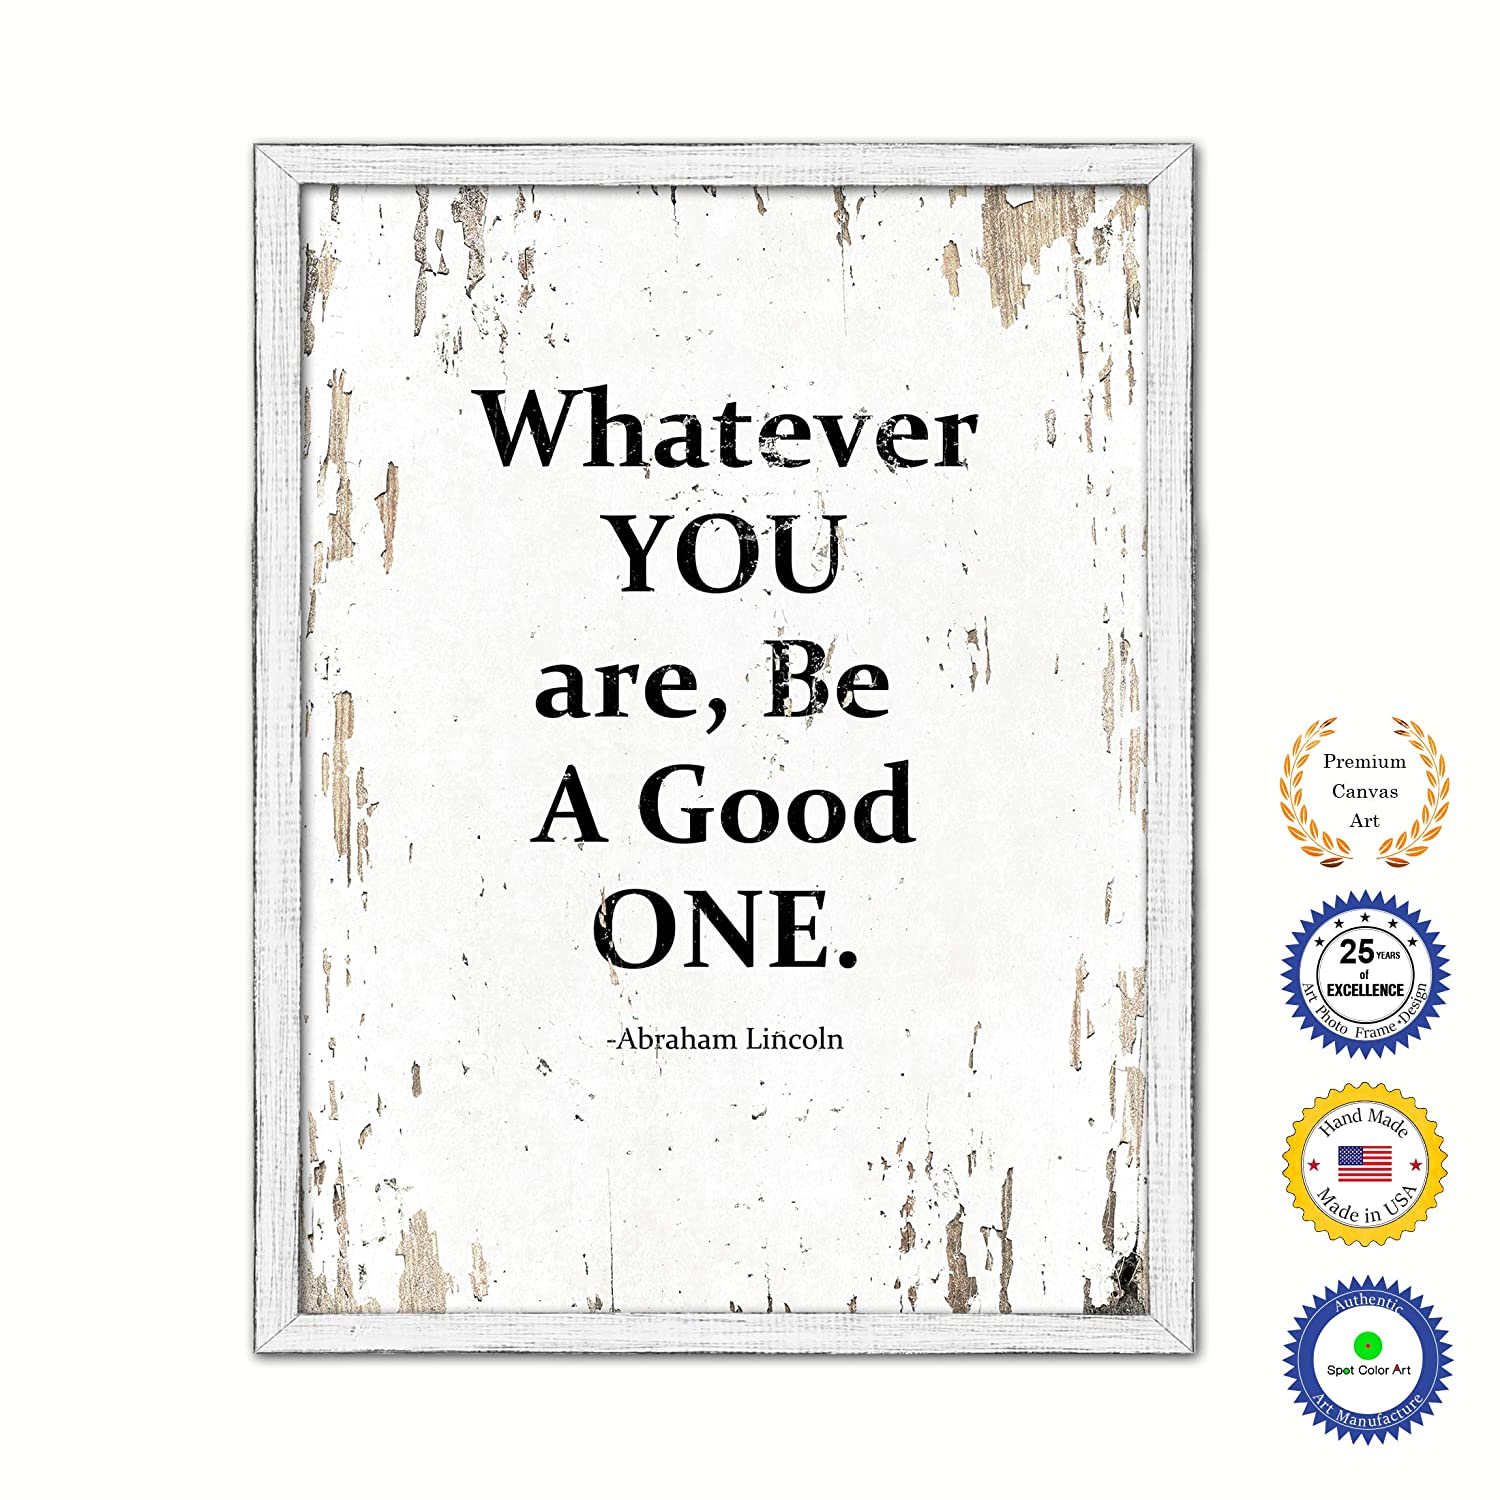 Whatever You are be a Good one Country White Wash Wood Frame Cottage Shabby Chic Gifts Home Decor Wall Art Canvas Print 7 x 9